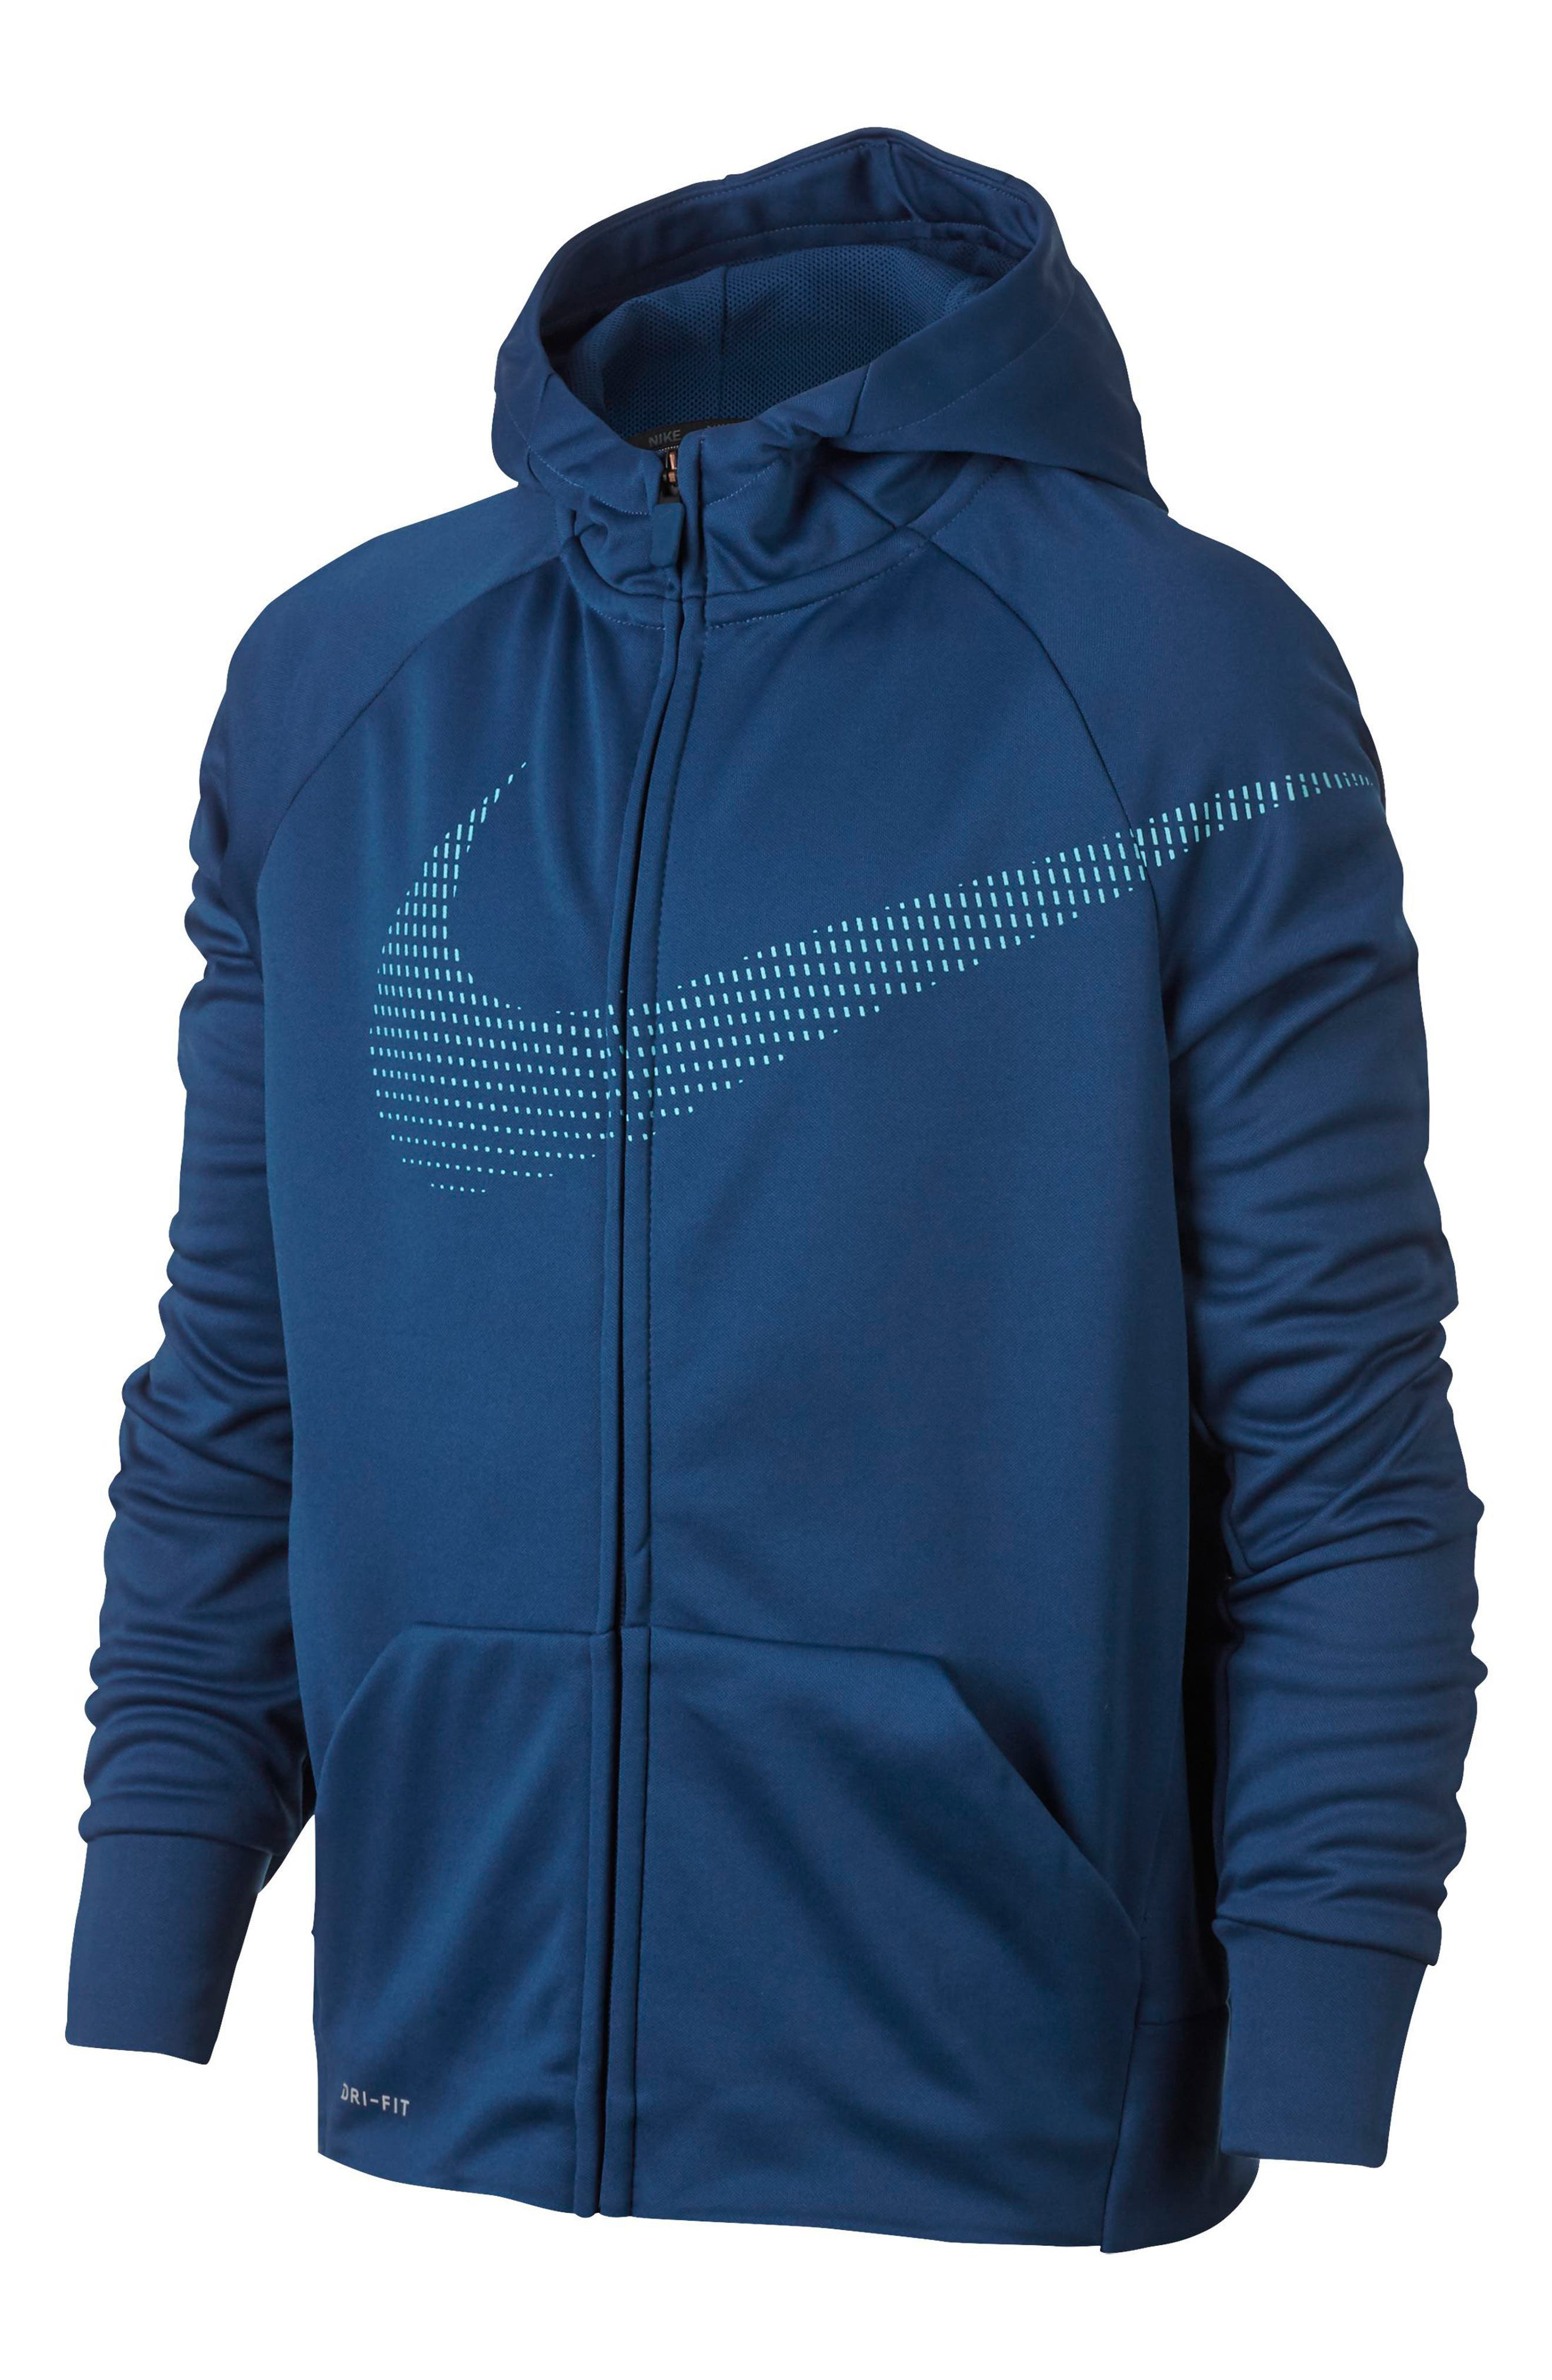 Therma Dry Hoodie,                         Main,                         color, Gym Blue